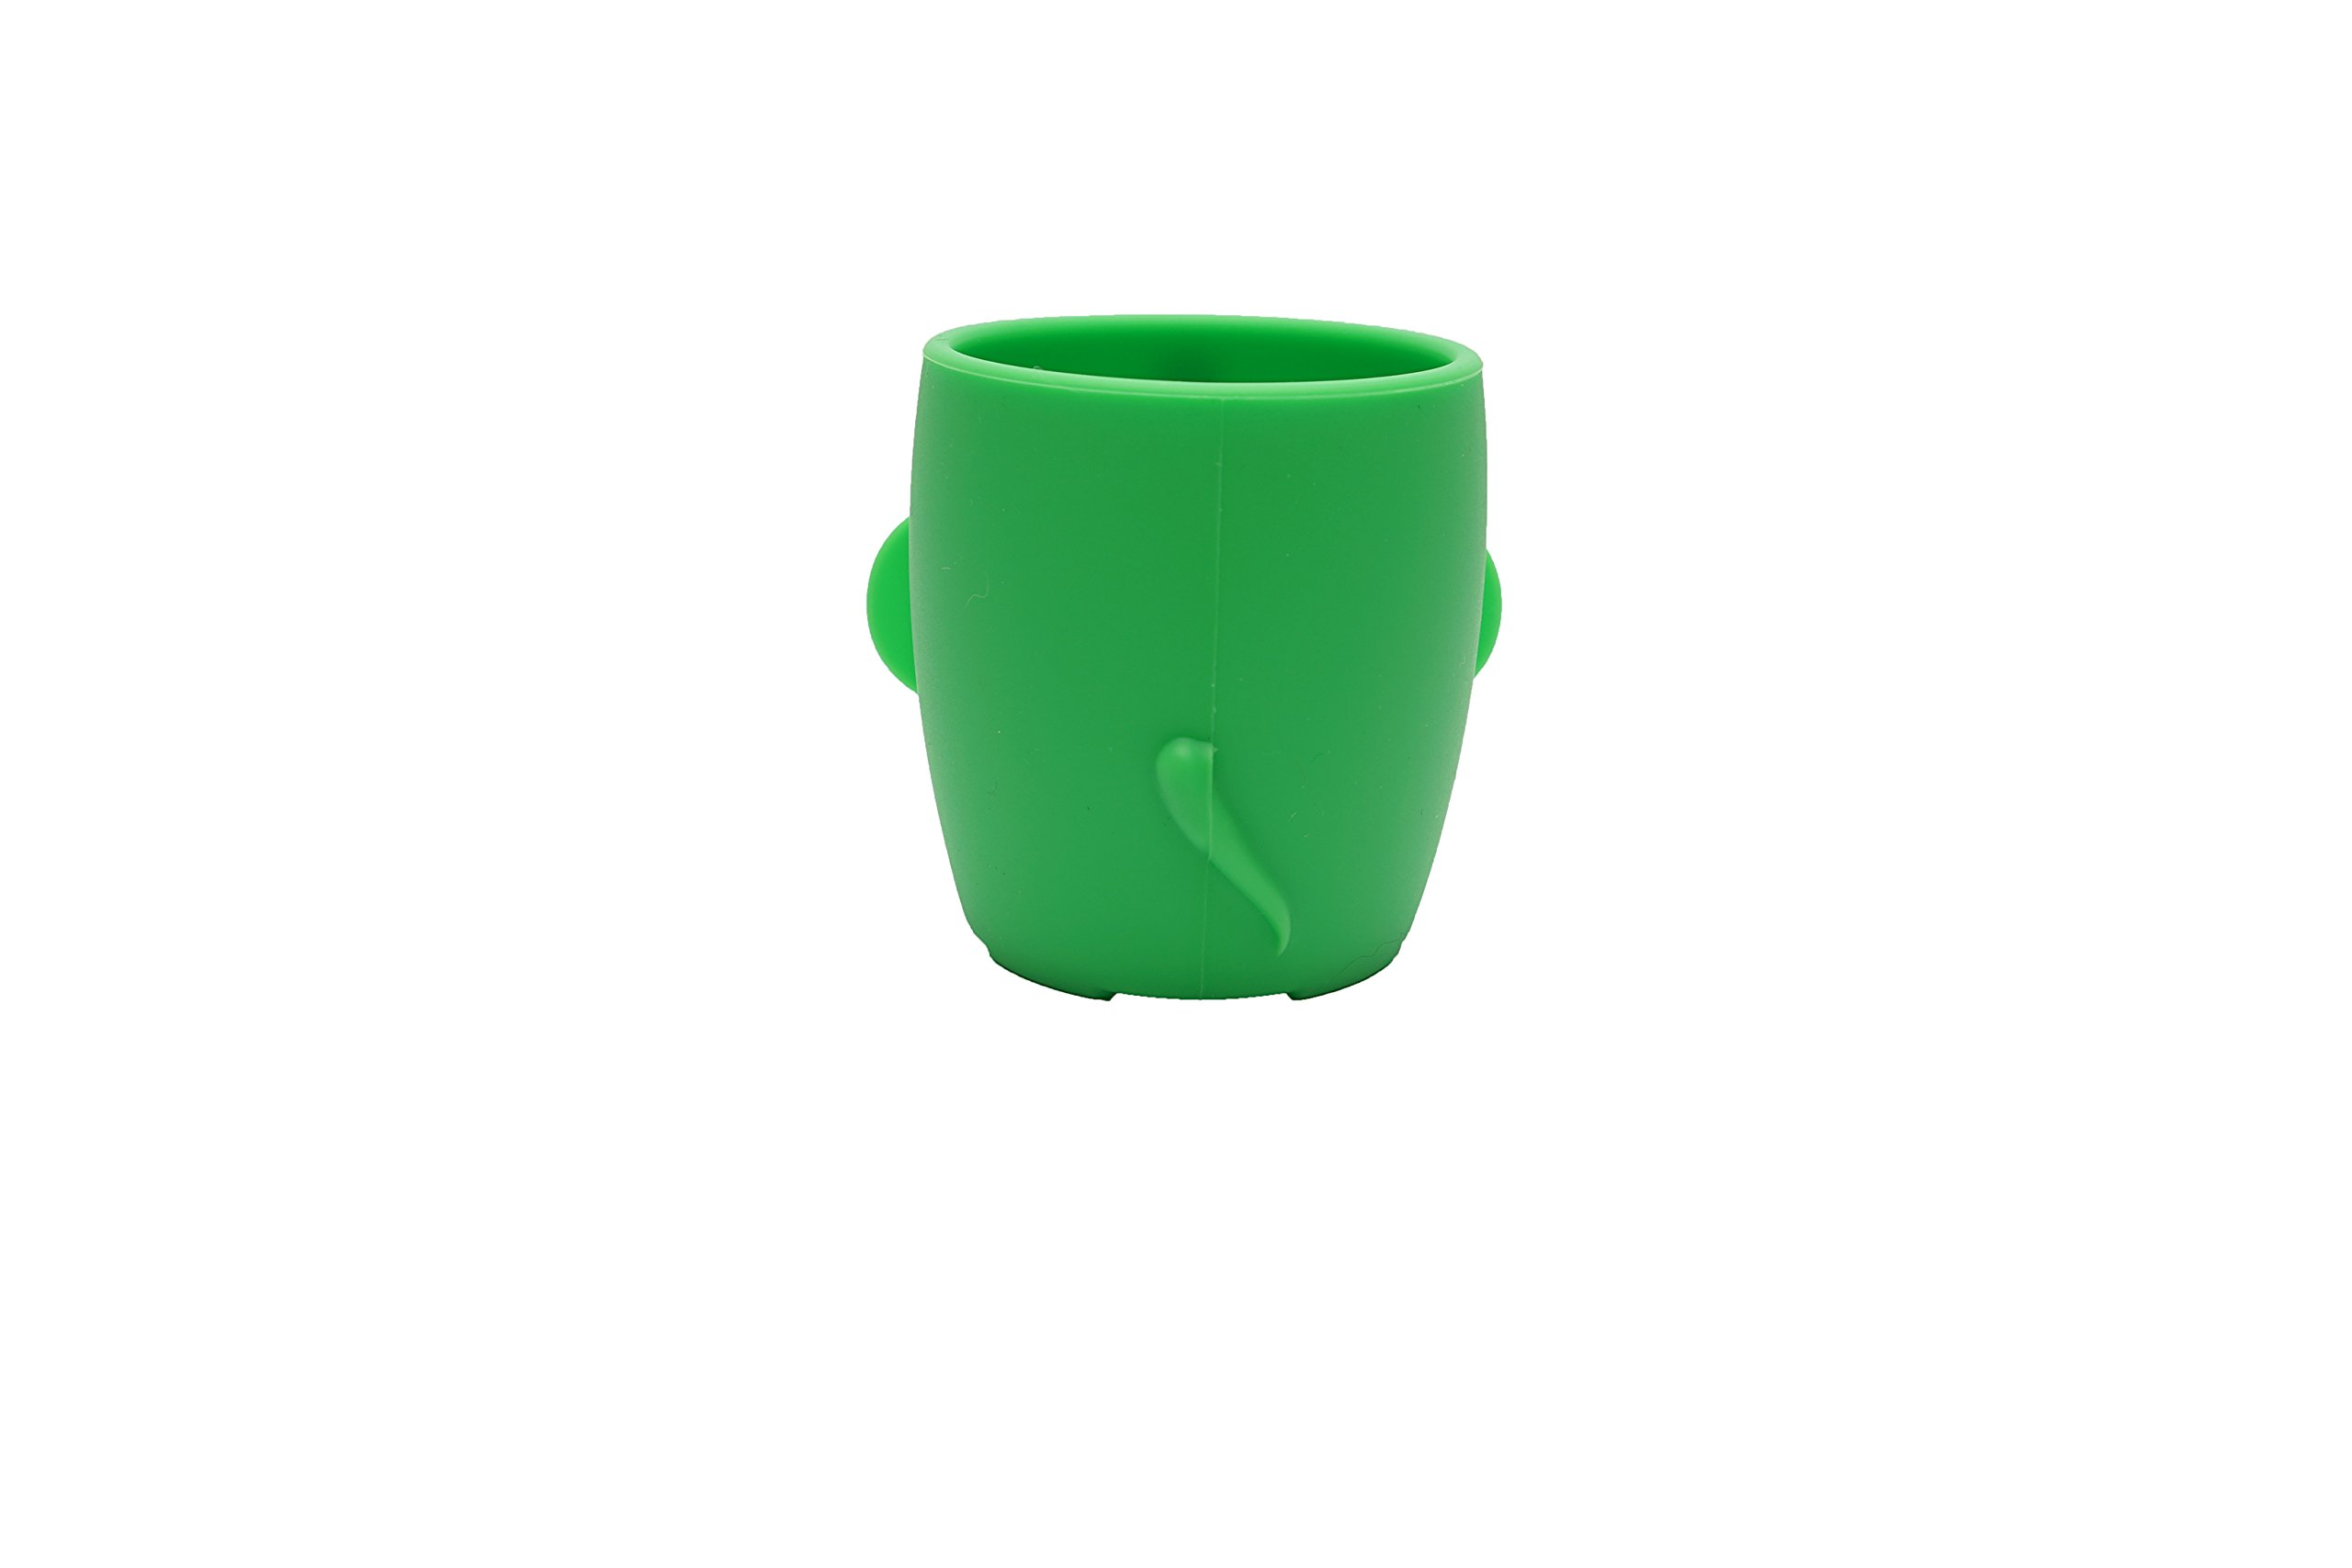 Baby Kid Sippy Cup Mug For Toddlers Learning Cup Elephant Design Great For Baby's Interaction Dexterity Food Grade Silicone BPA FREE Bambini Bear - Lime Green by Bambini Bear (Image #3)